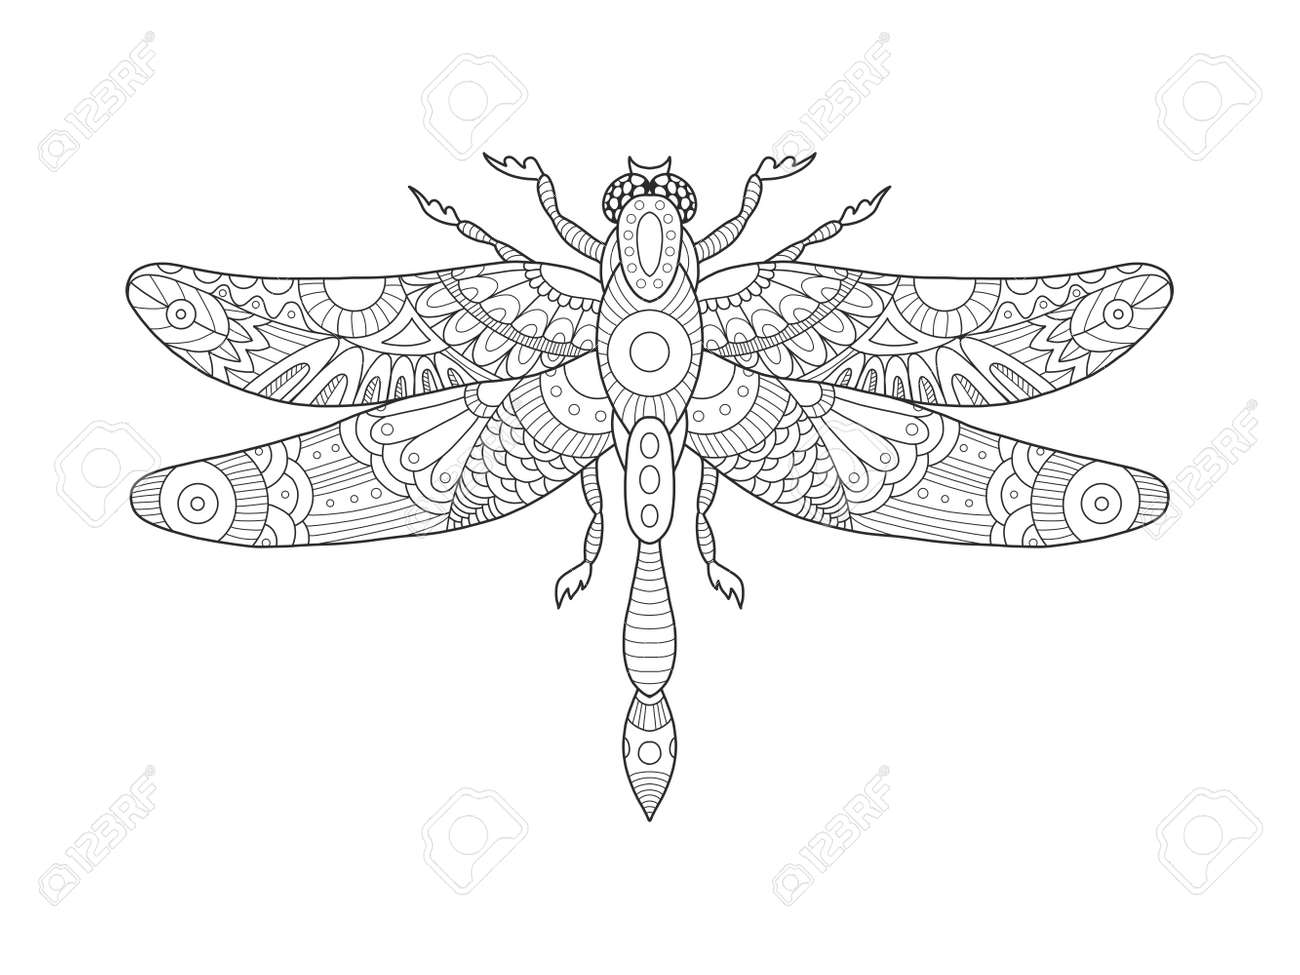 Dragonfly Coloring Book For Adults Vector Illustration Anti Stress